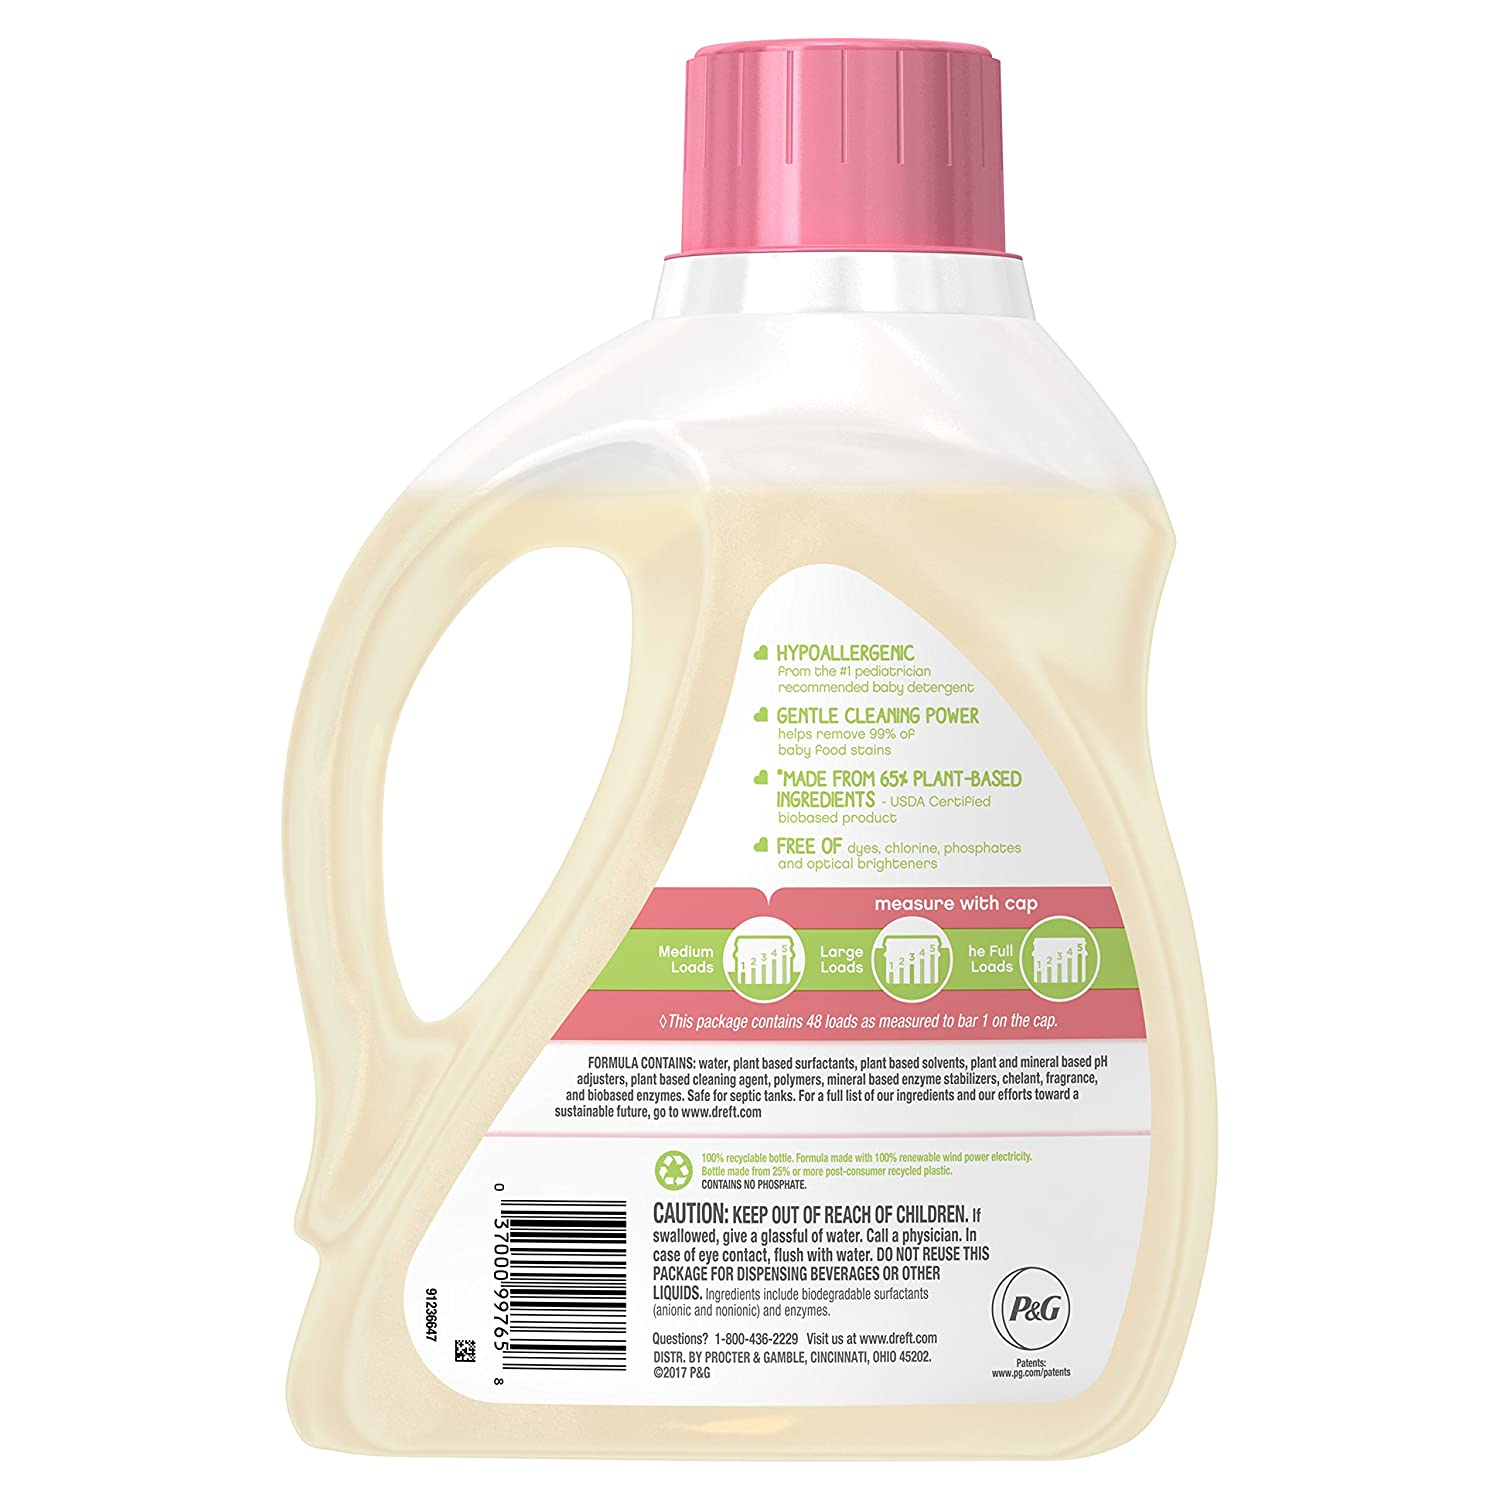 Amazon.com: Dreft Purtouch Liquid Baby Laundry Detergent, Hypoallergenic for Baby, Infant, or Newborn, 75 Ounces (48 Loads): Health & Personal Care